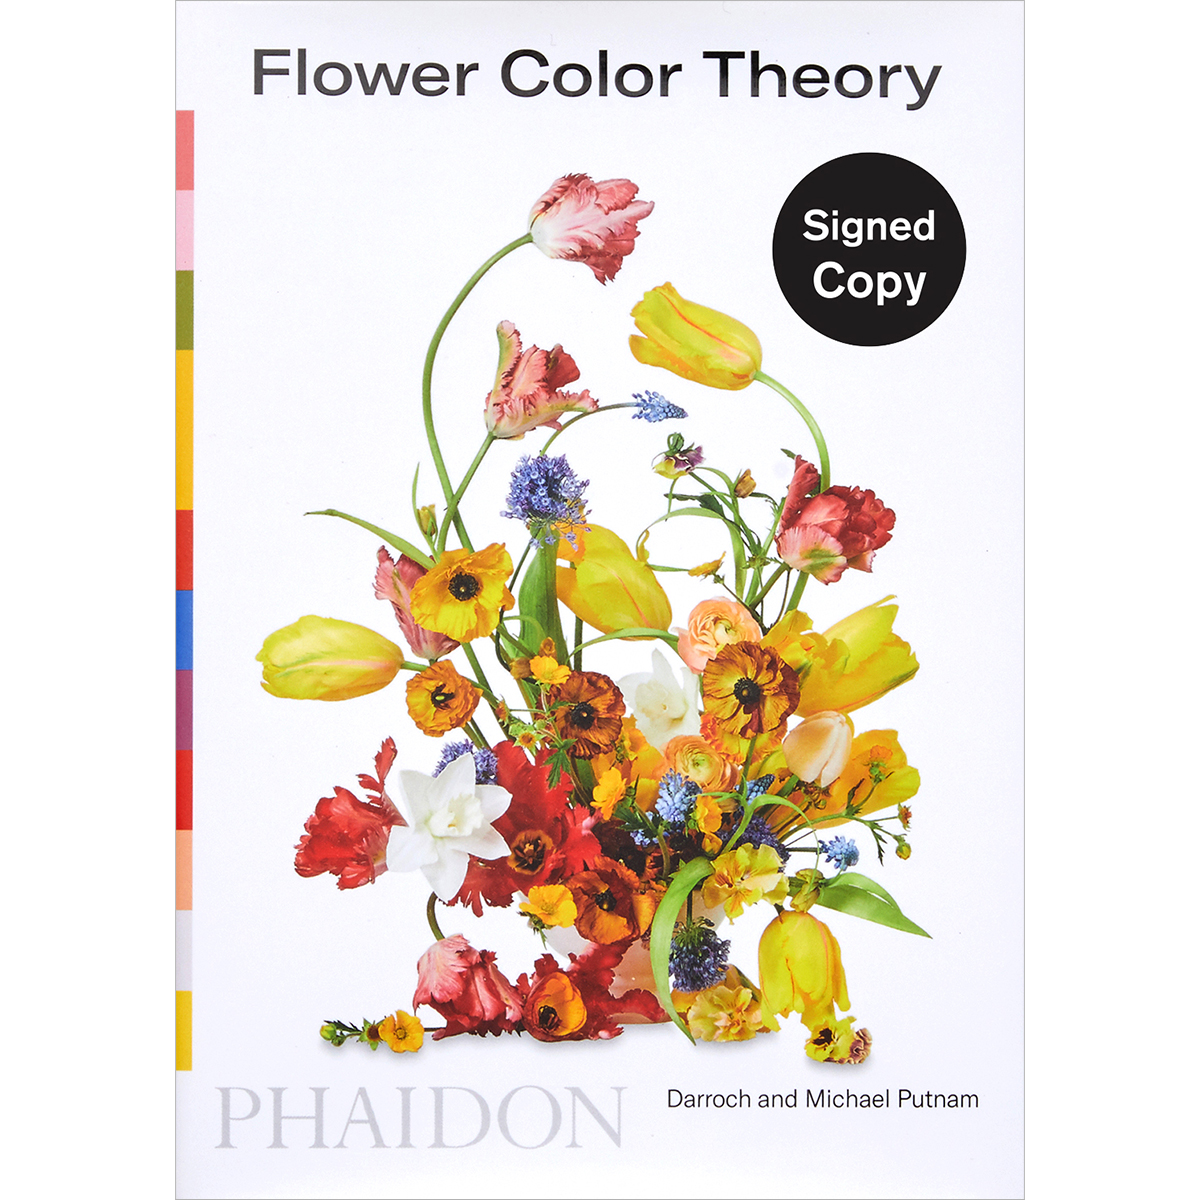 Flower Color Theory (signed edition)